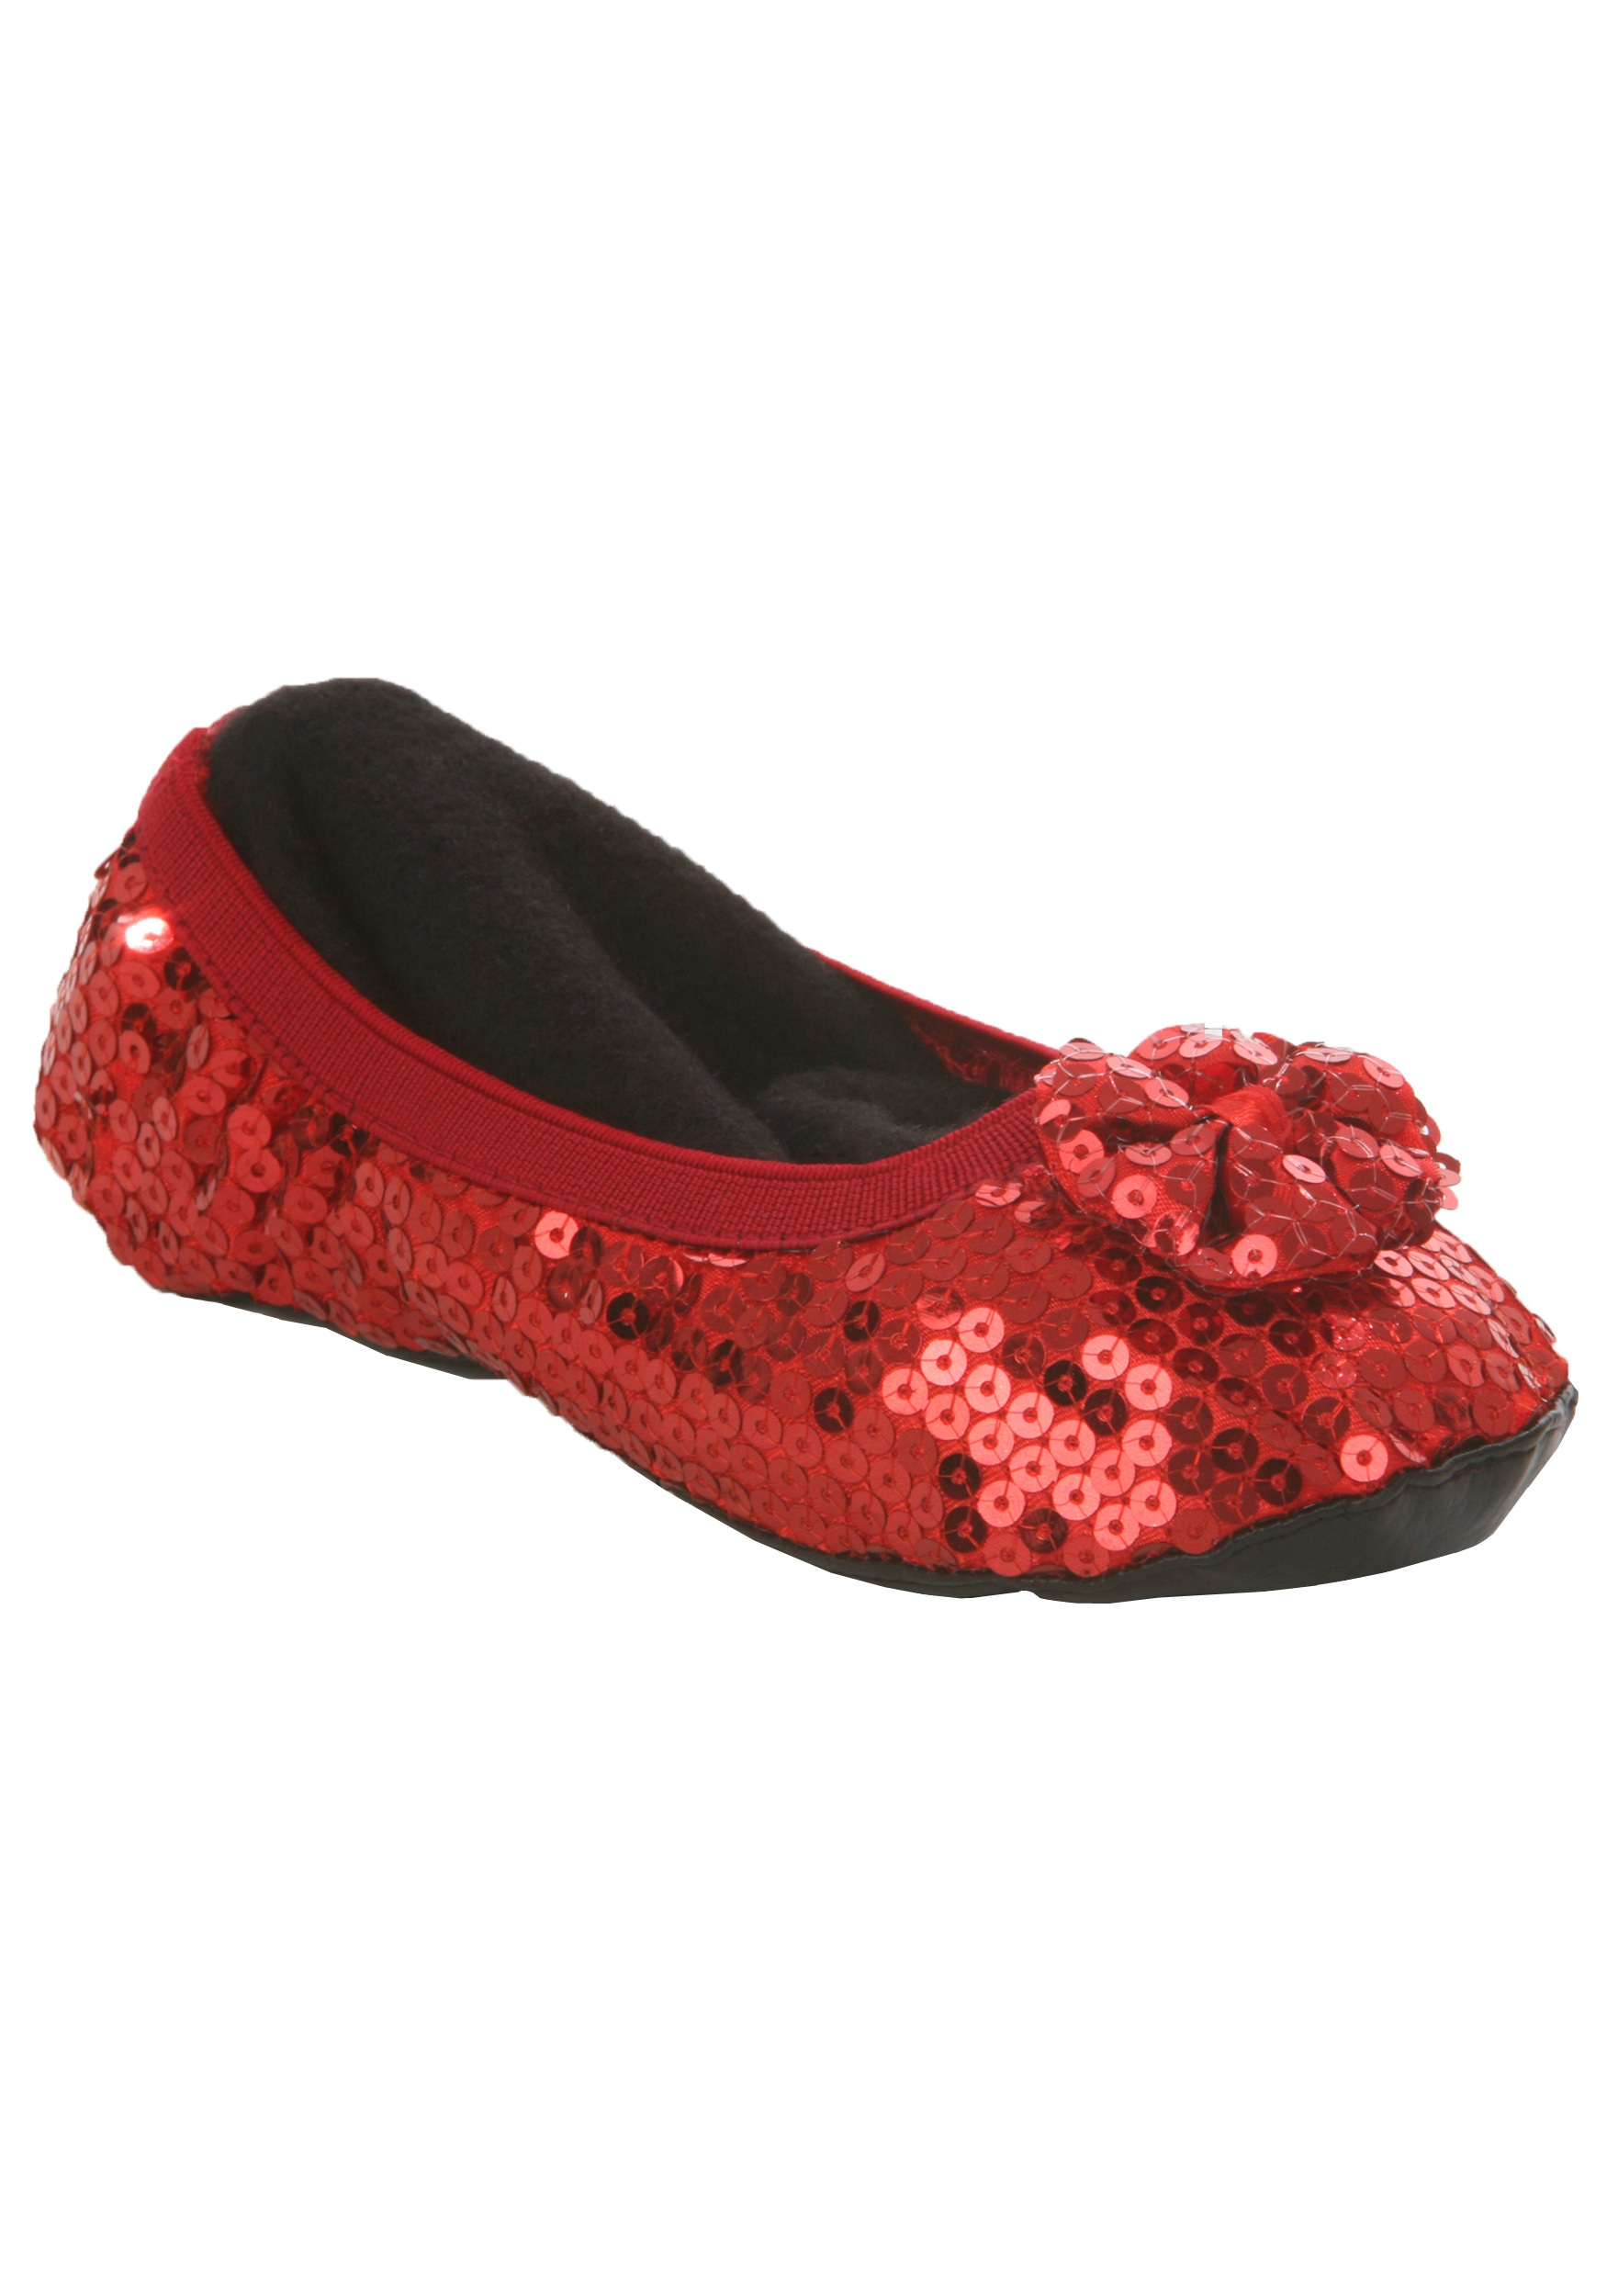 Red Slippers - Halloween Costume Ideas 2019